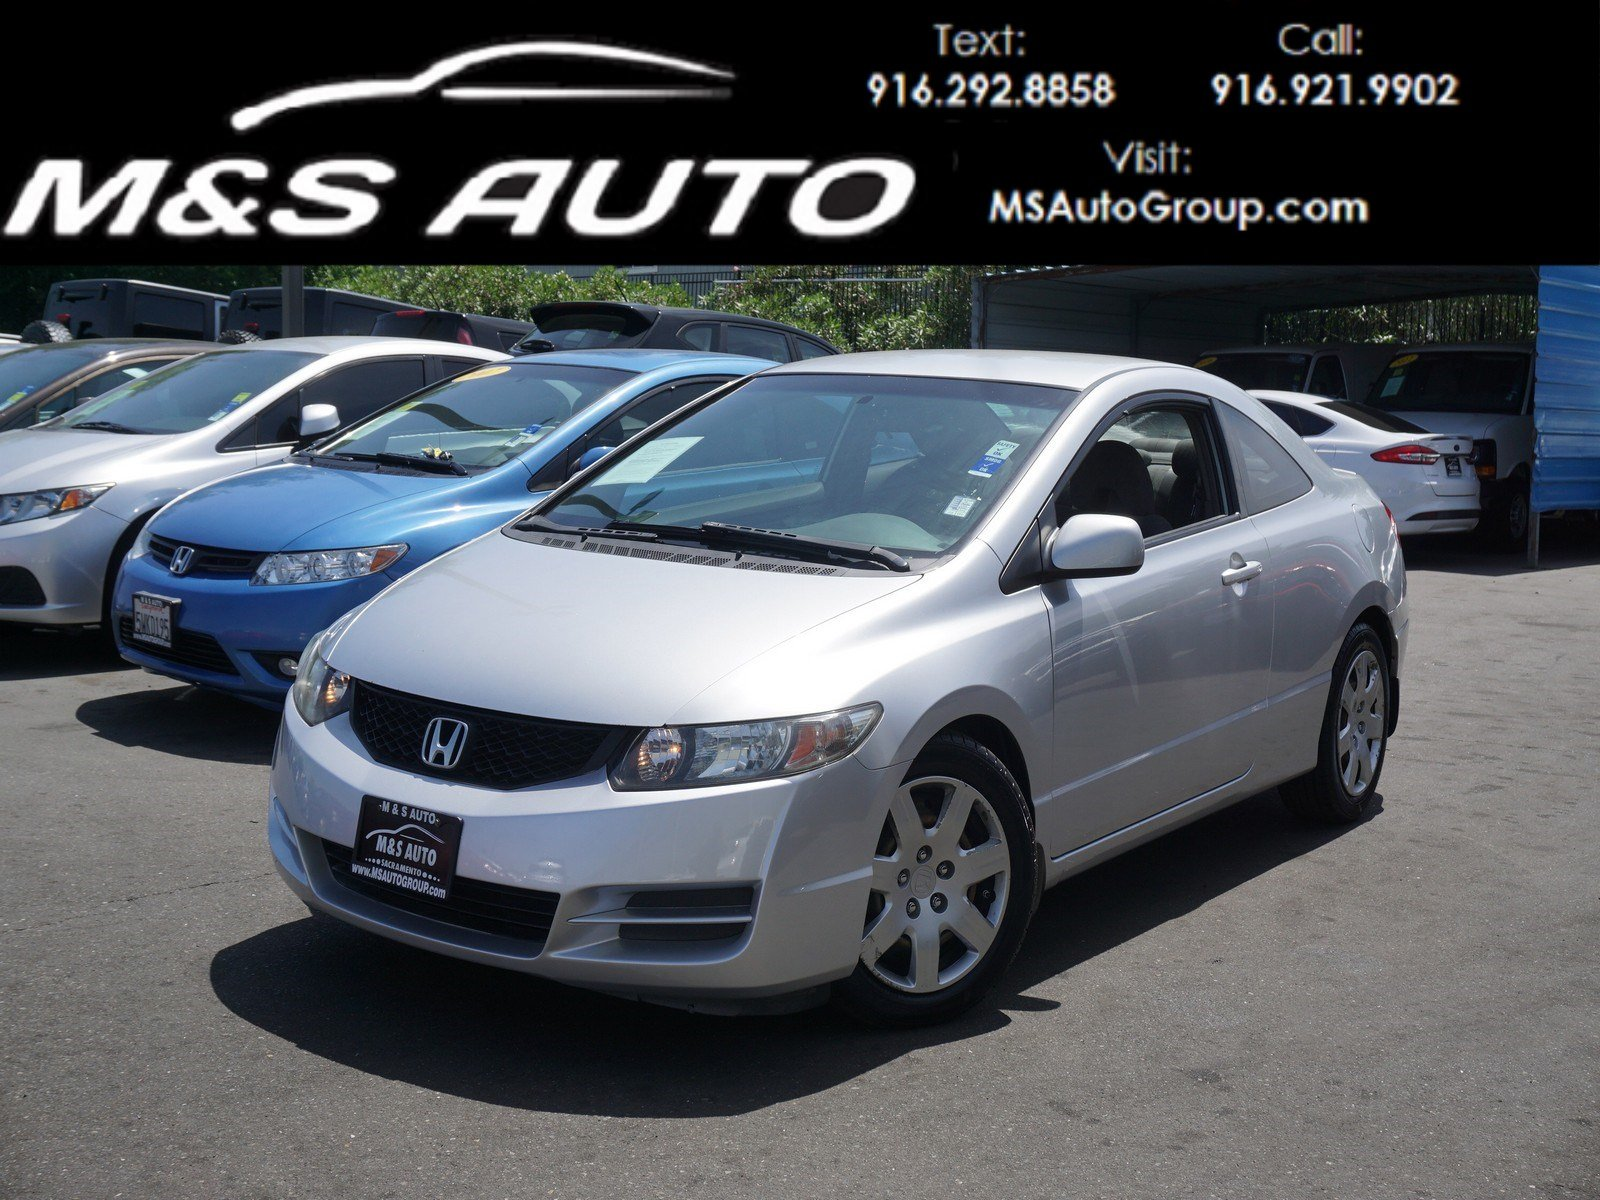 Pre-Owned 2010 Honda Civic Cpe LX